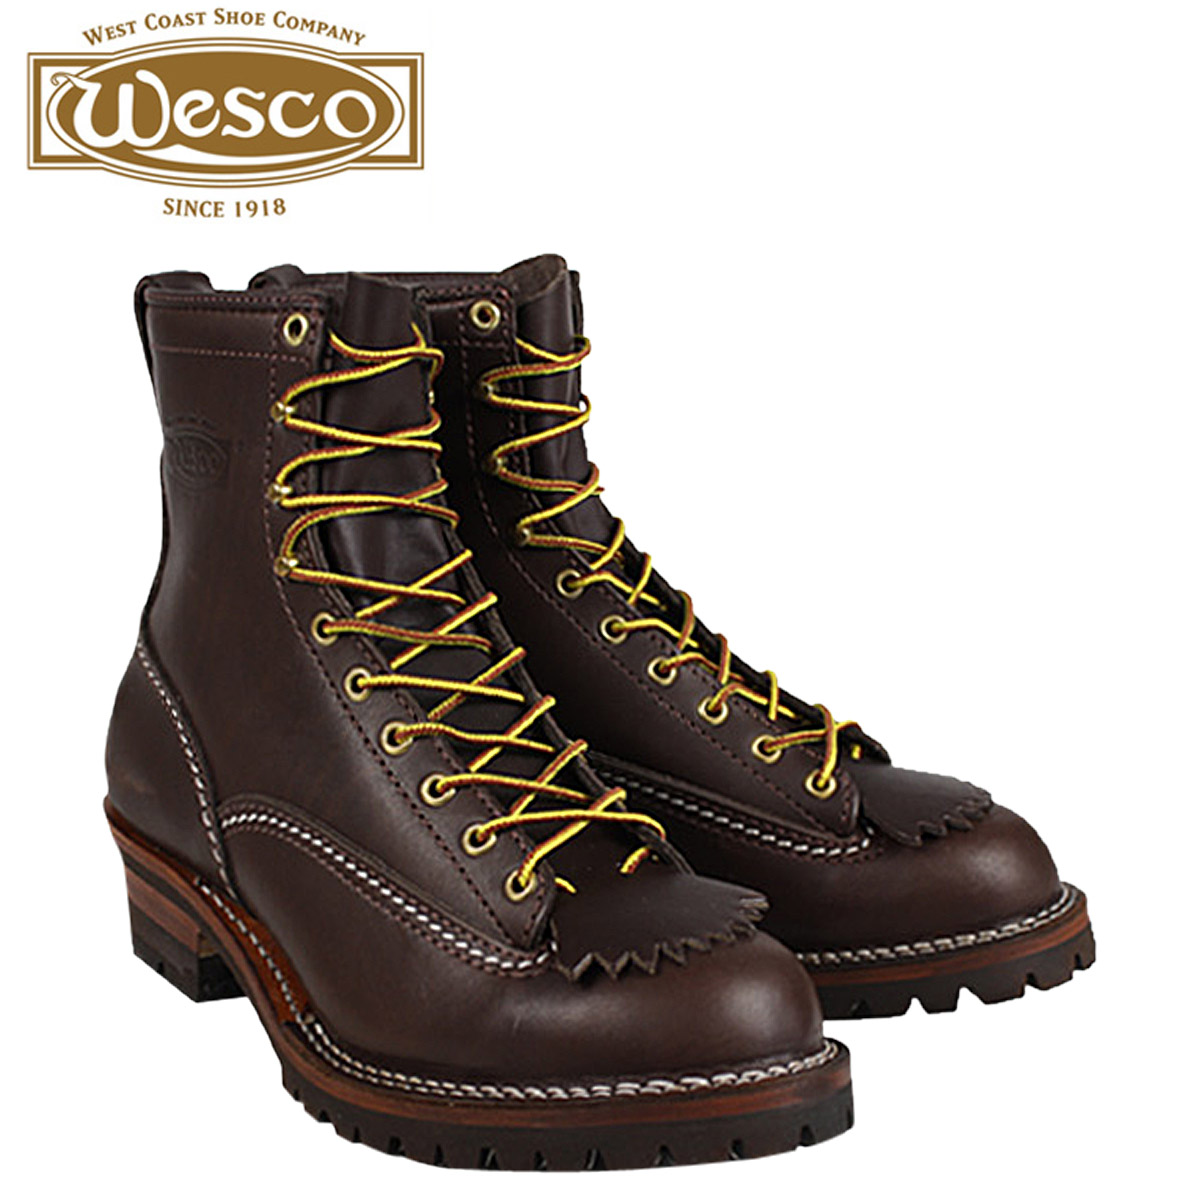 Dean Winchester [PIC] — Boots On Line